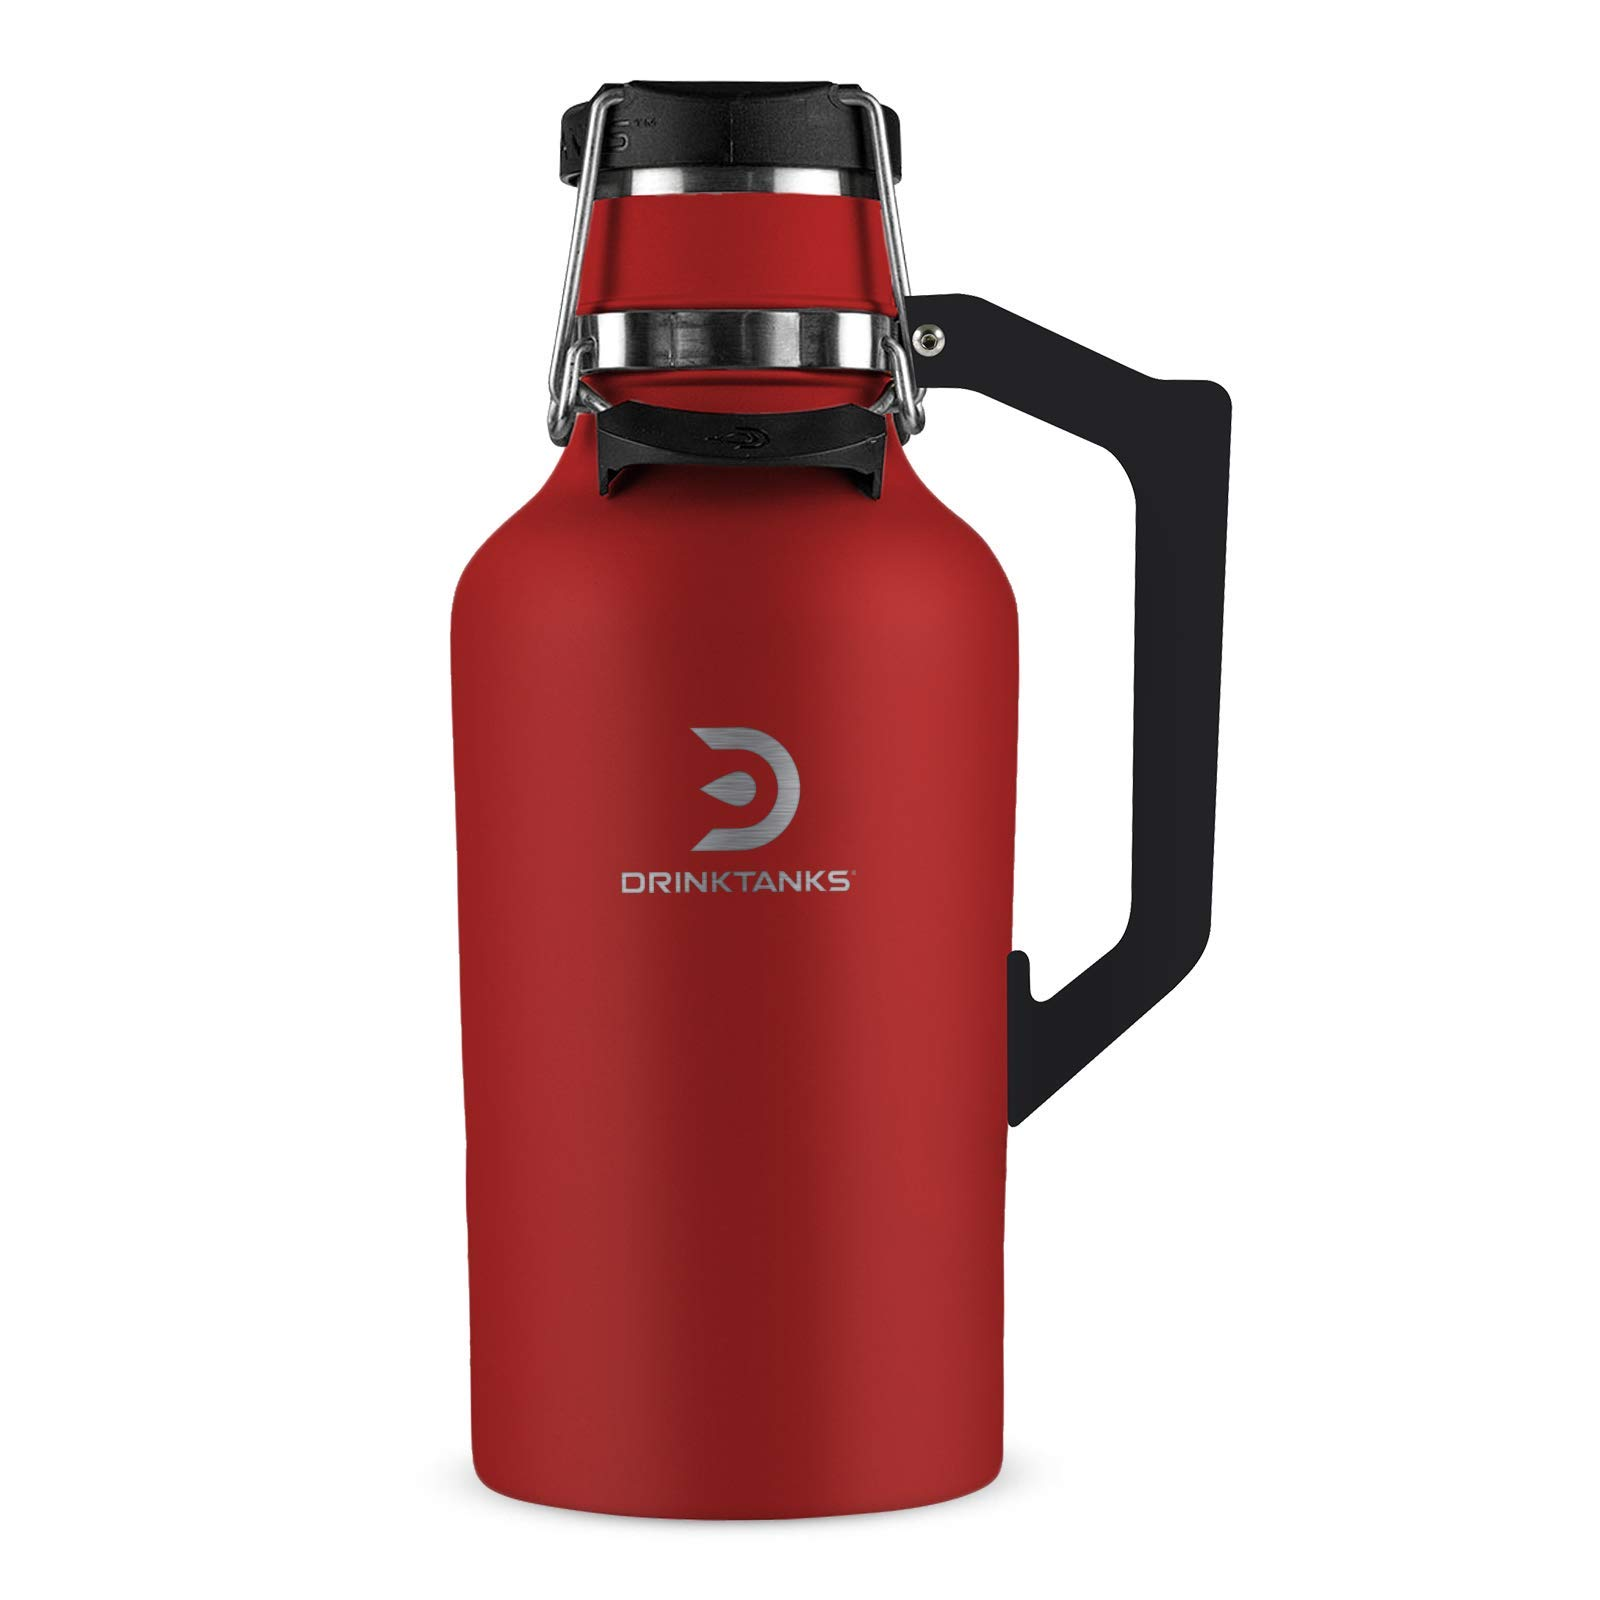 DrinkTanks 64 oz Vacuum Insulated Stainless Steel Beer Growler